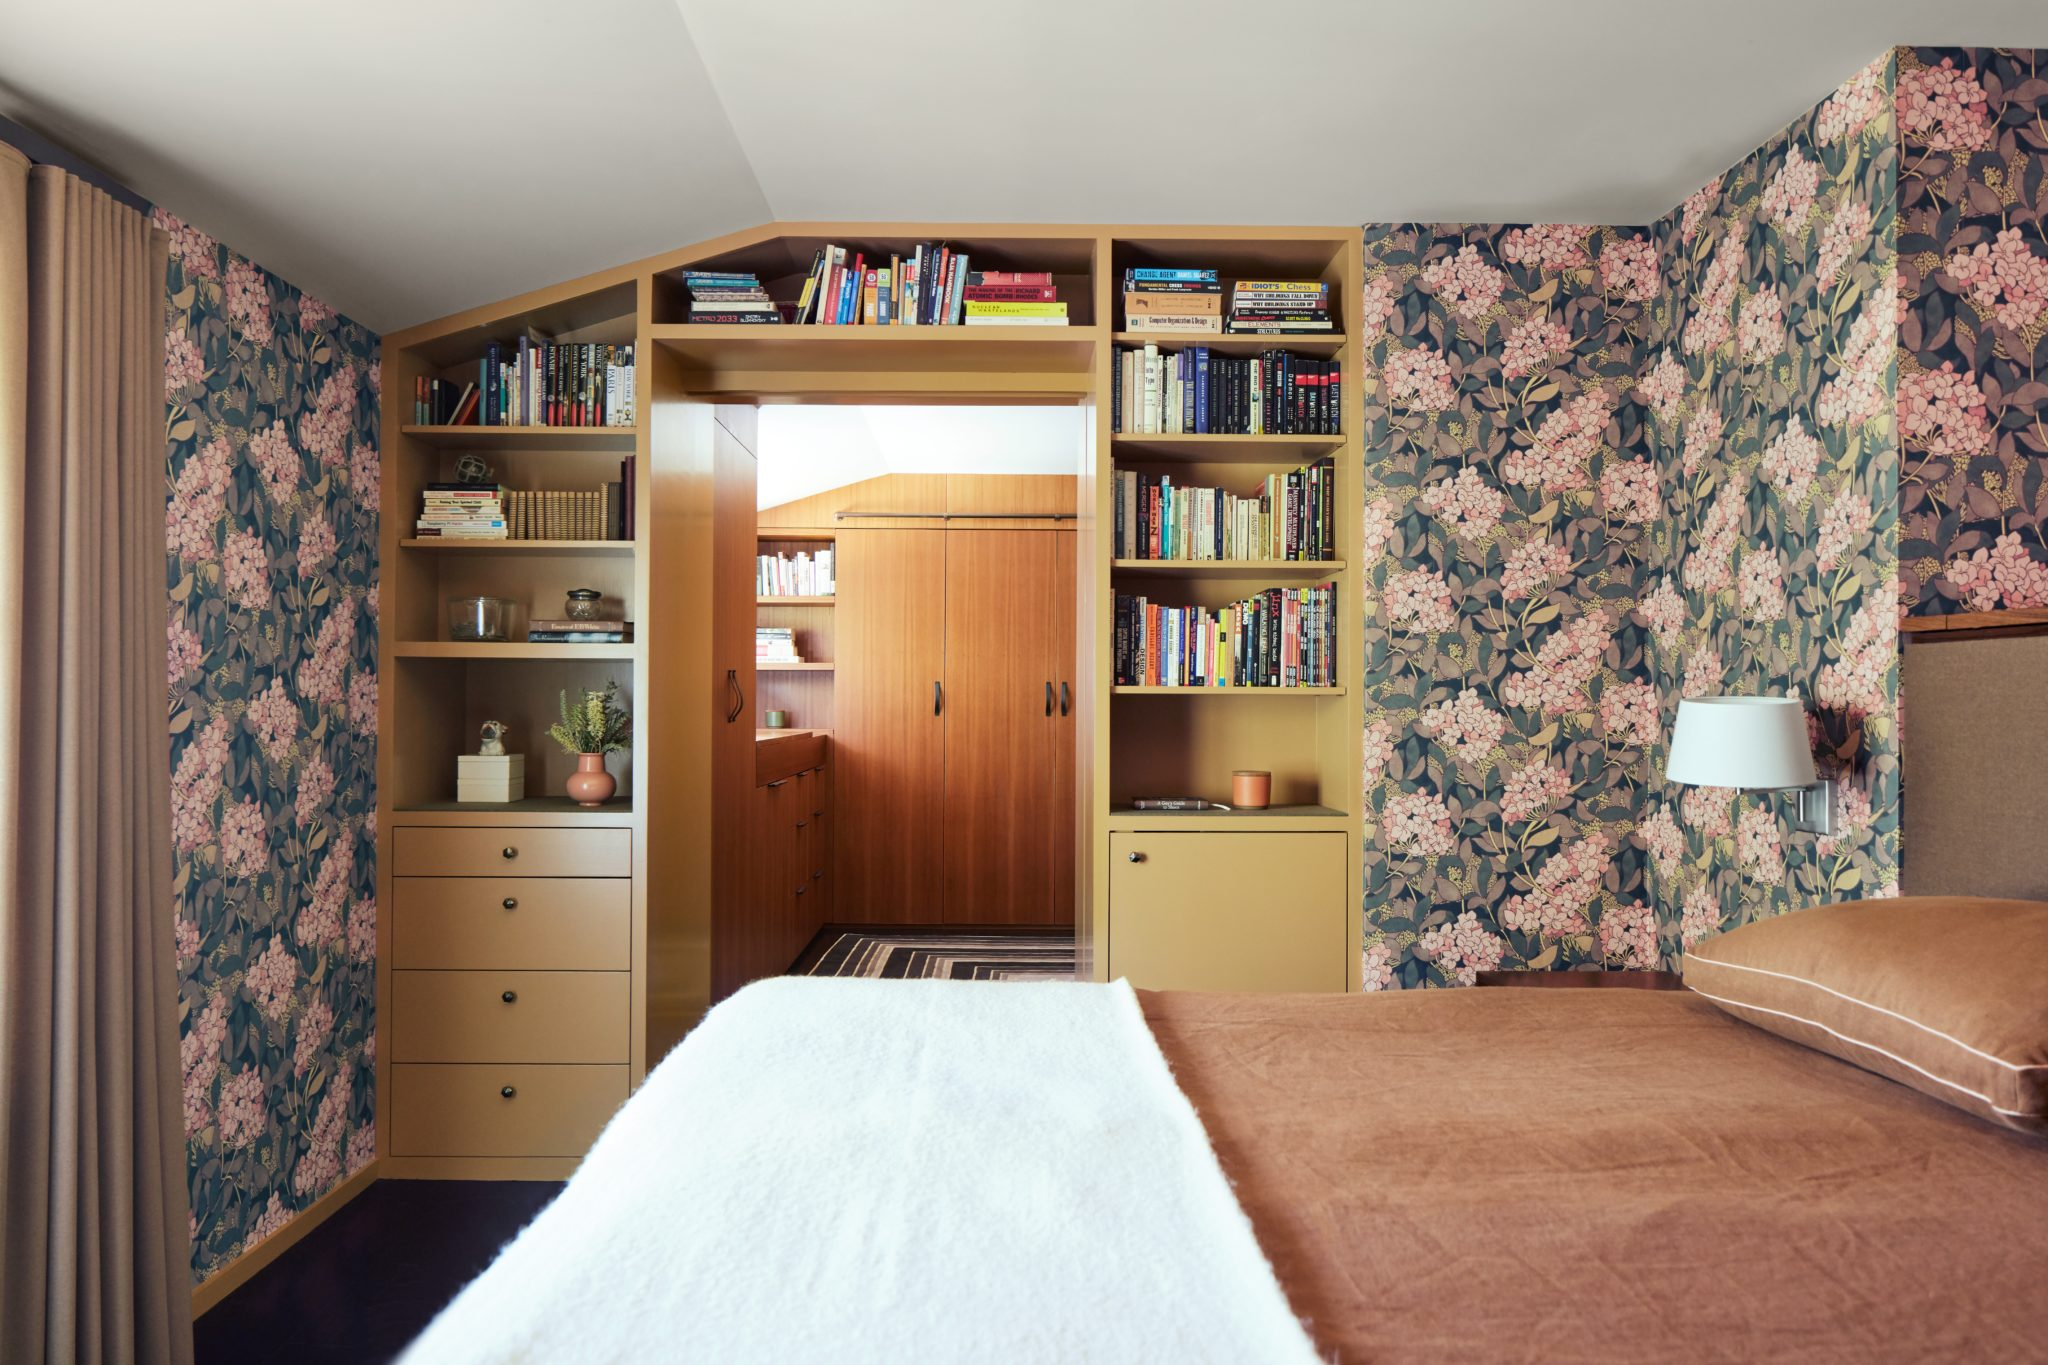 California Revival in Palo Alto - bedroom with custom shelving and wallpaper by Alden Miller Interiors